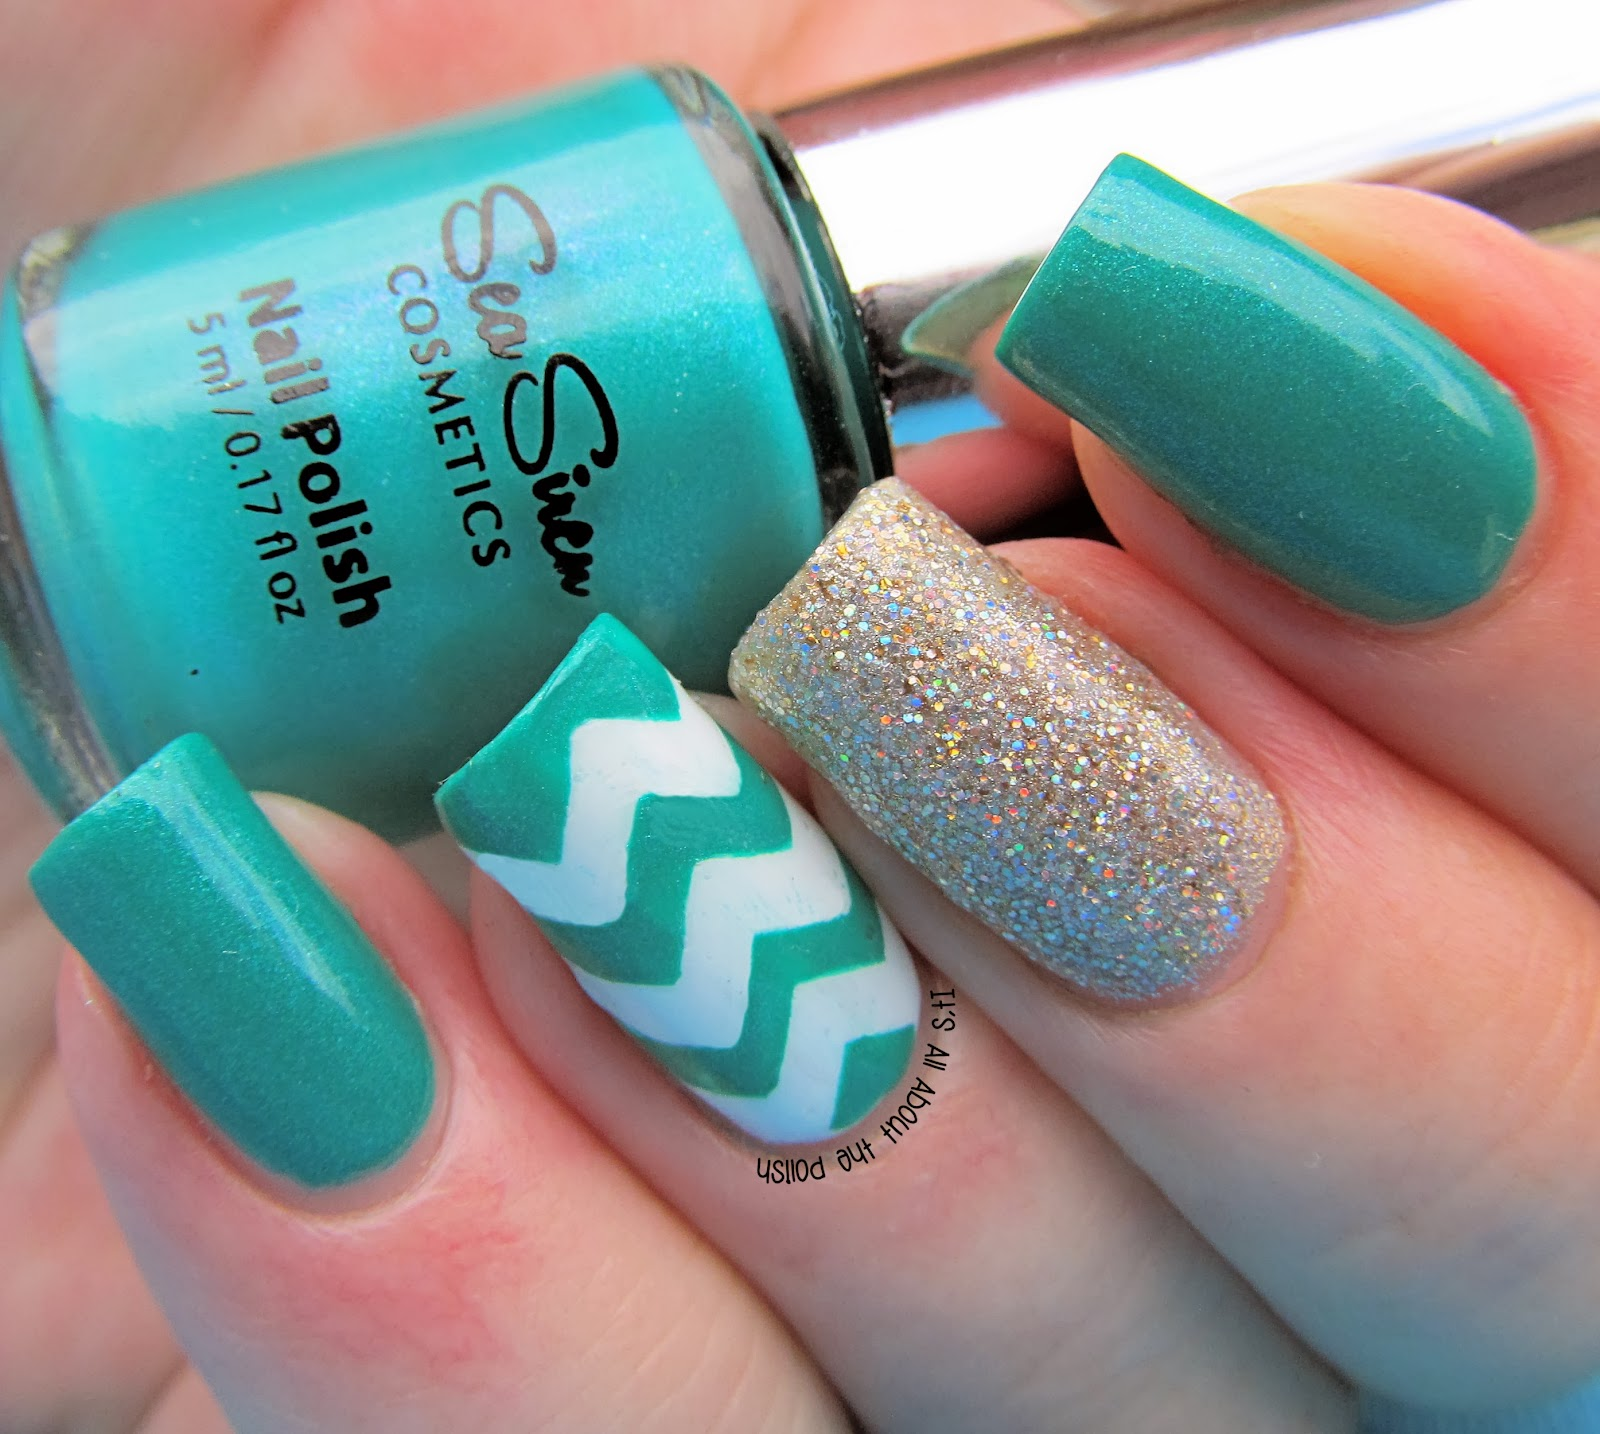 Teal color nail designs gallery nail art and nail design ideas teal color nail designs gallery nail art and nail design ideas teal color nail designs choice prinsesfo Images